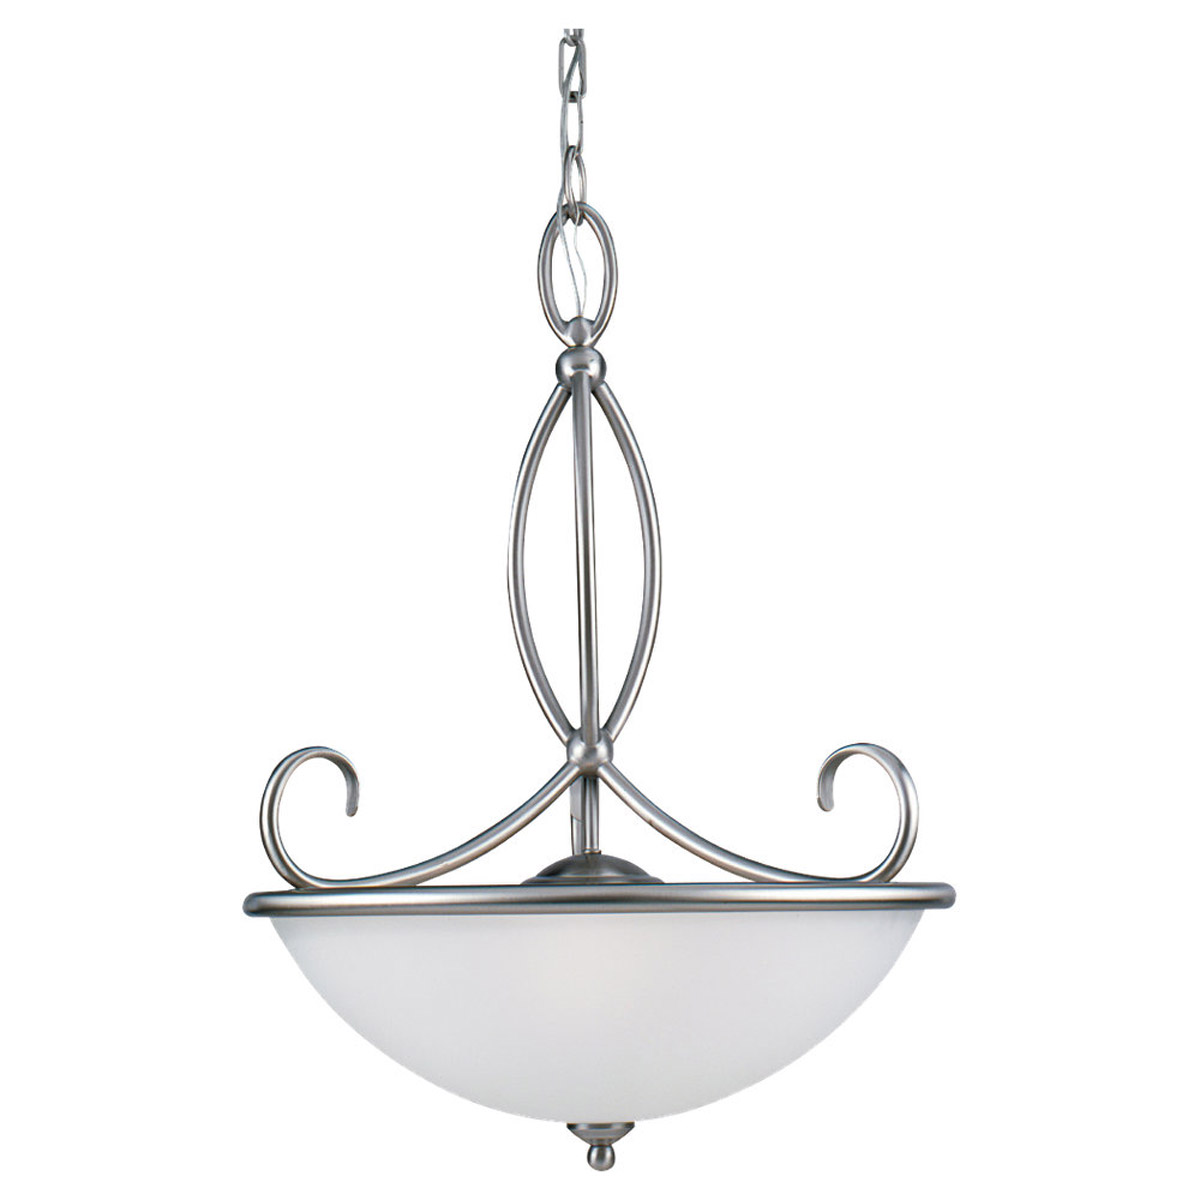 Sea Gull Lighting Pemberton 3 Light Pendant in Brushed Nickel 65075-962 photo